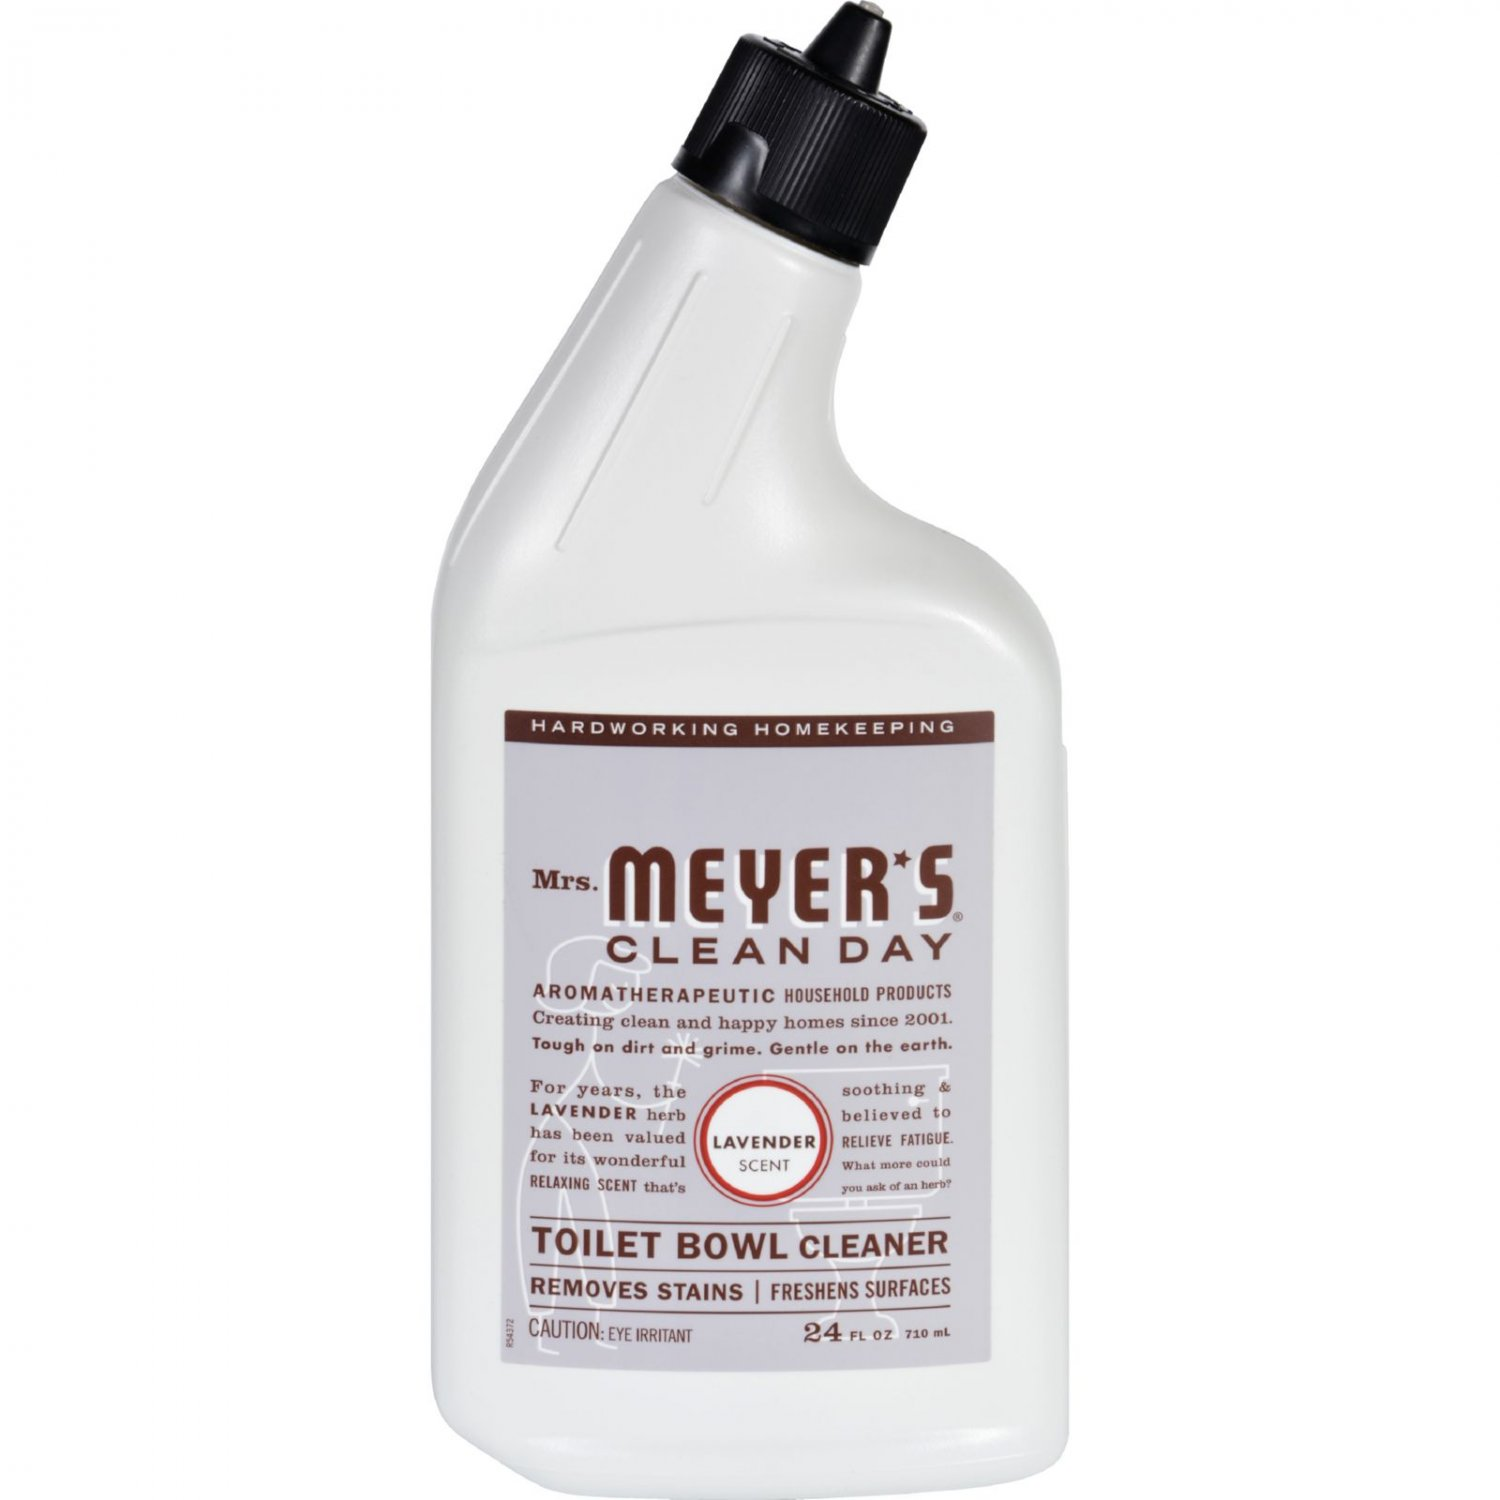 Mrs. Meyer's Toilet Bowl Cleaner - Lavender - 24 fl oz